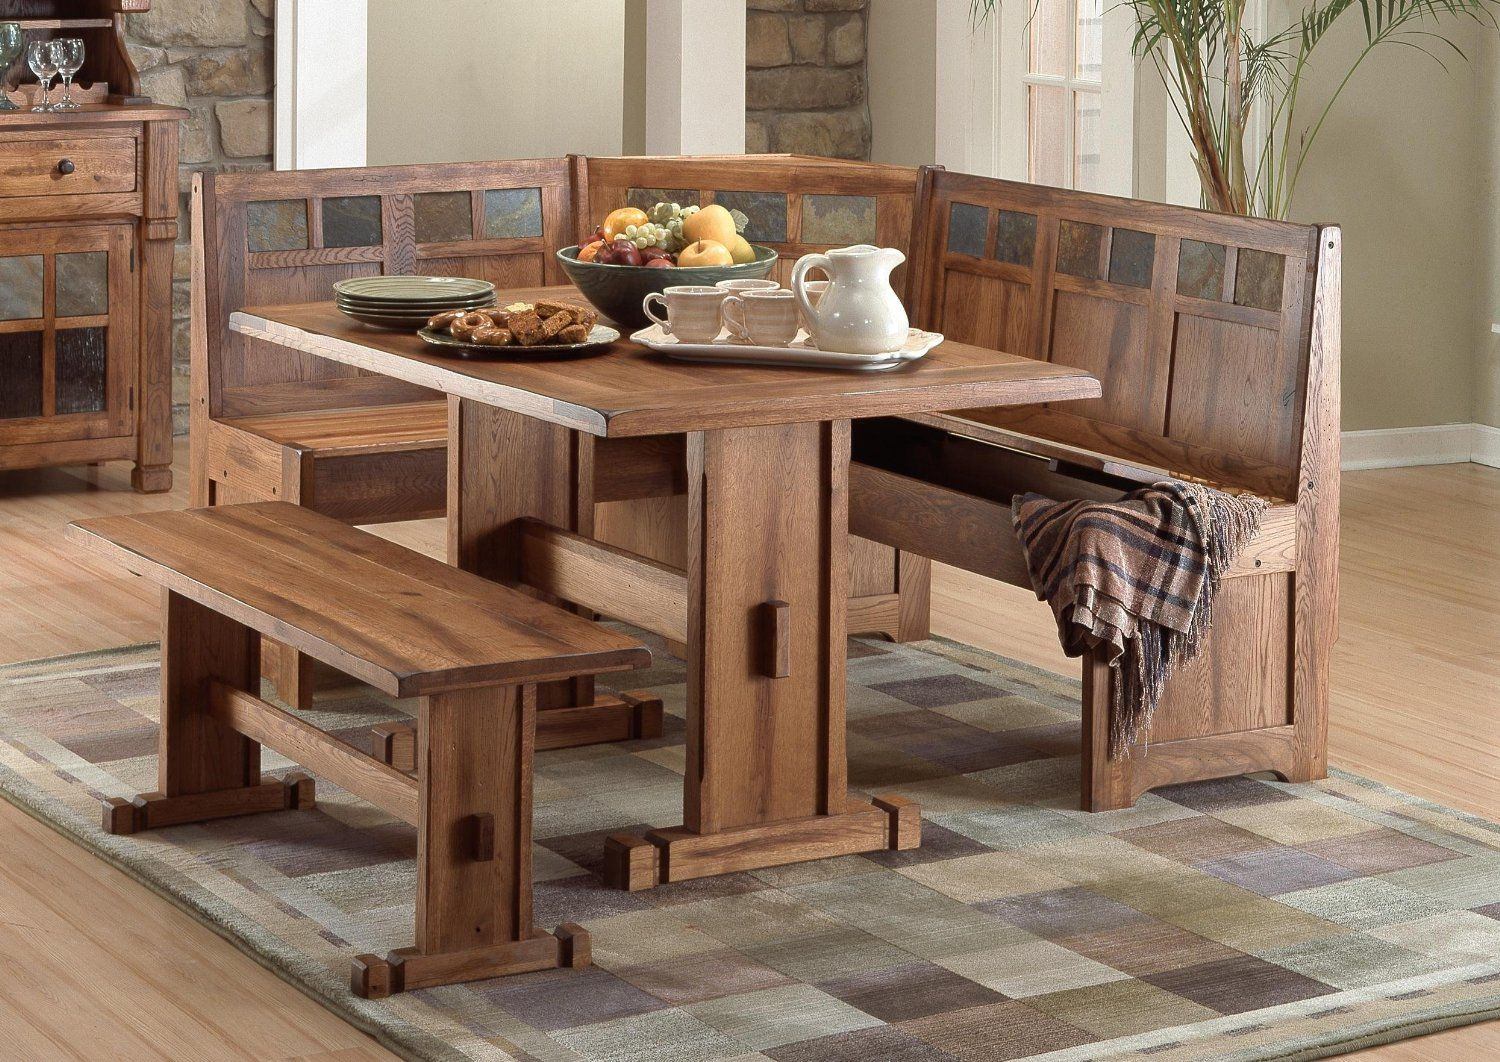 wood kitchen table with bench seating designs ideas | dining bench